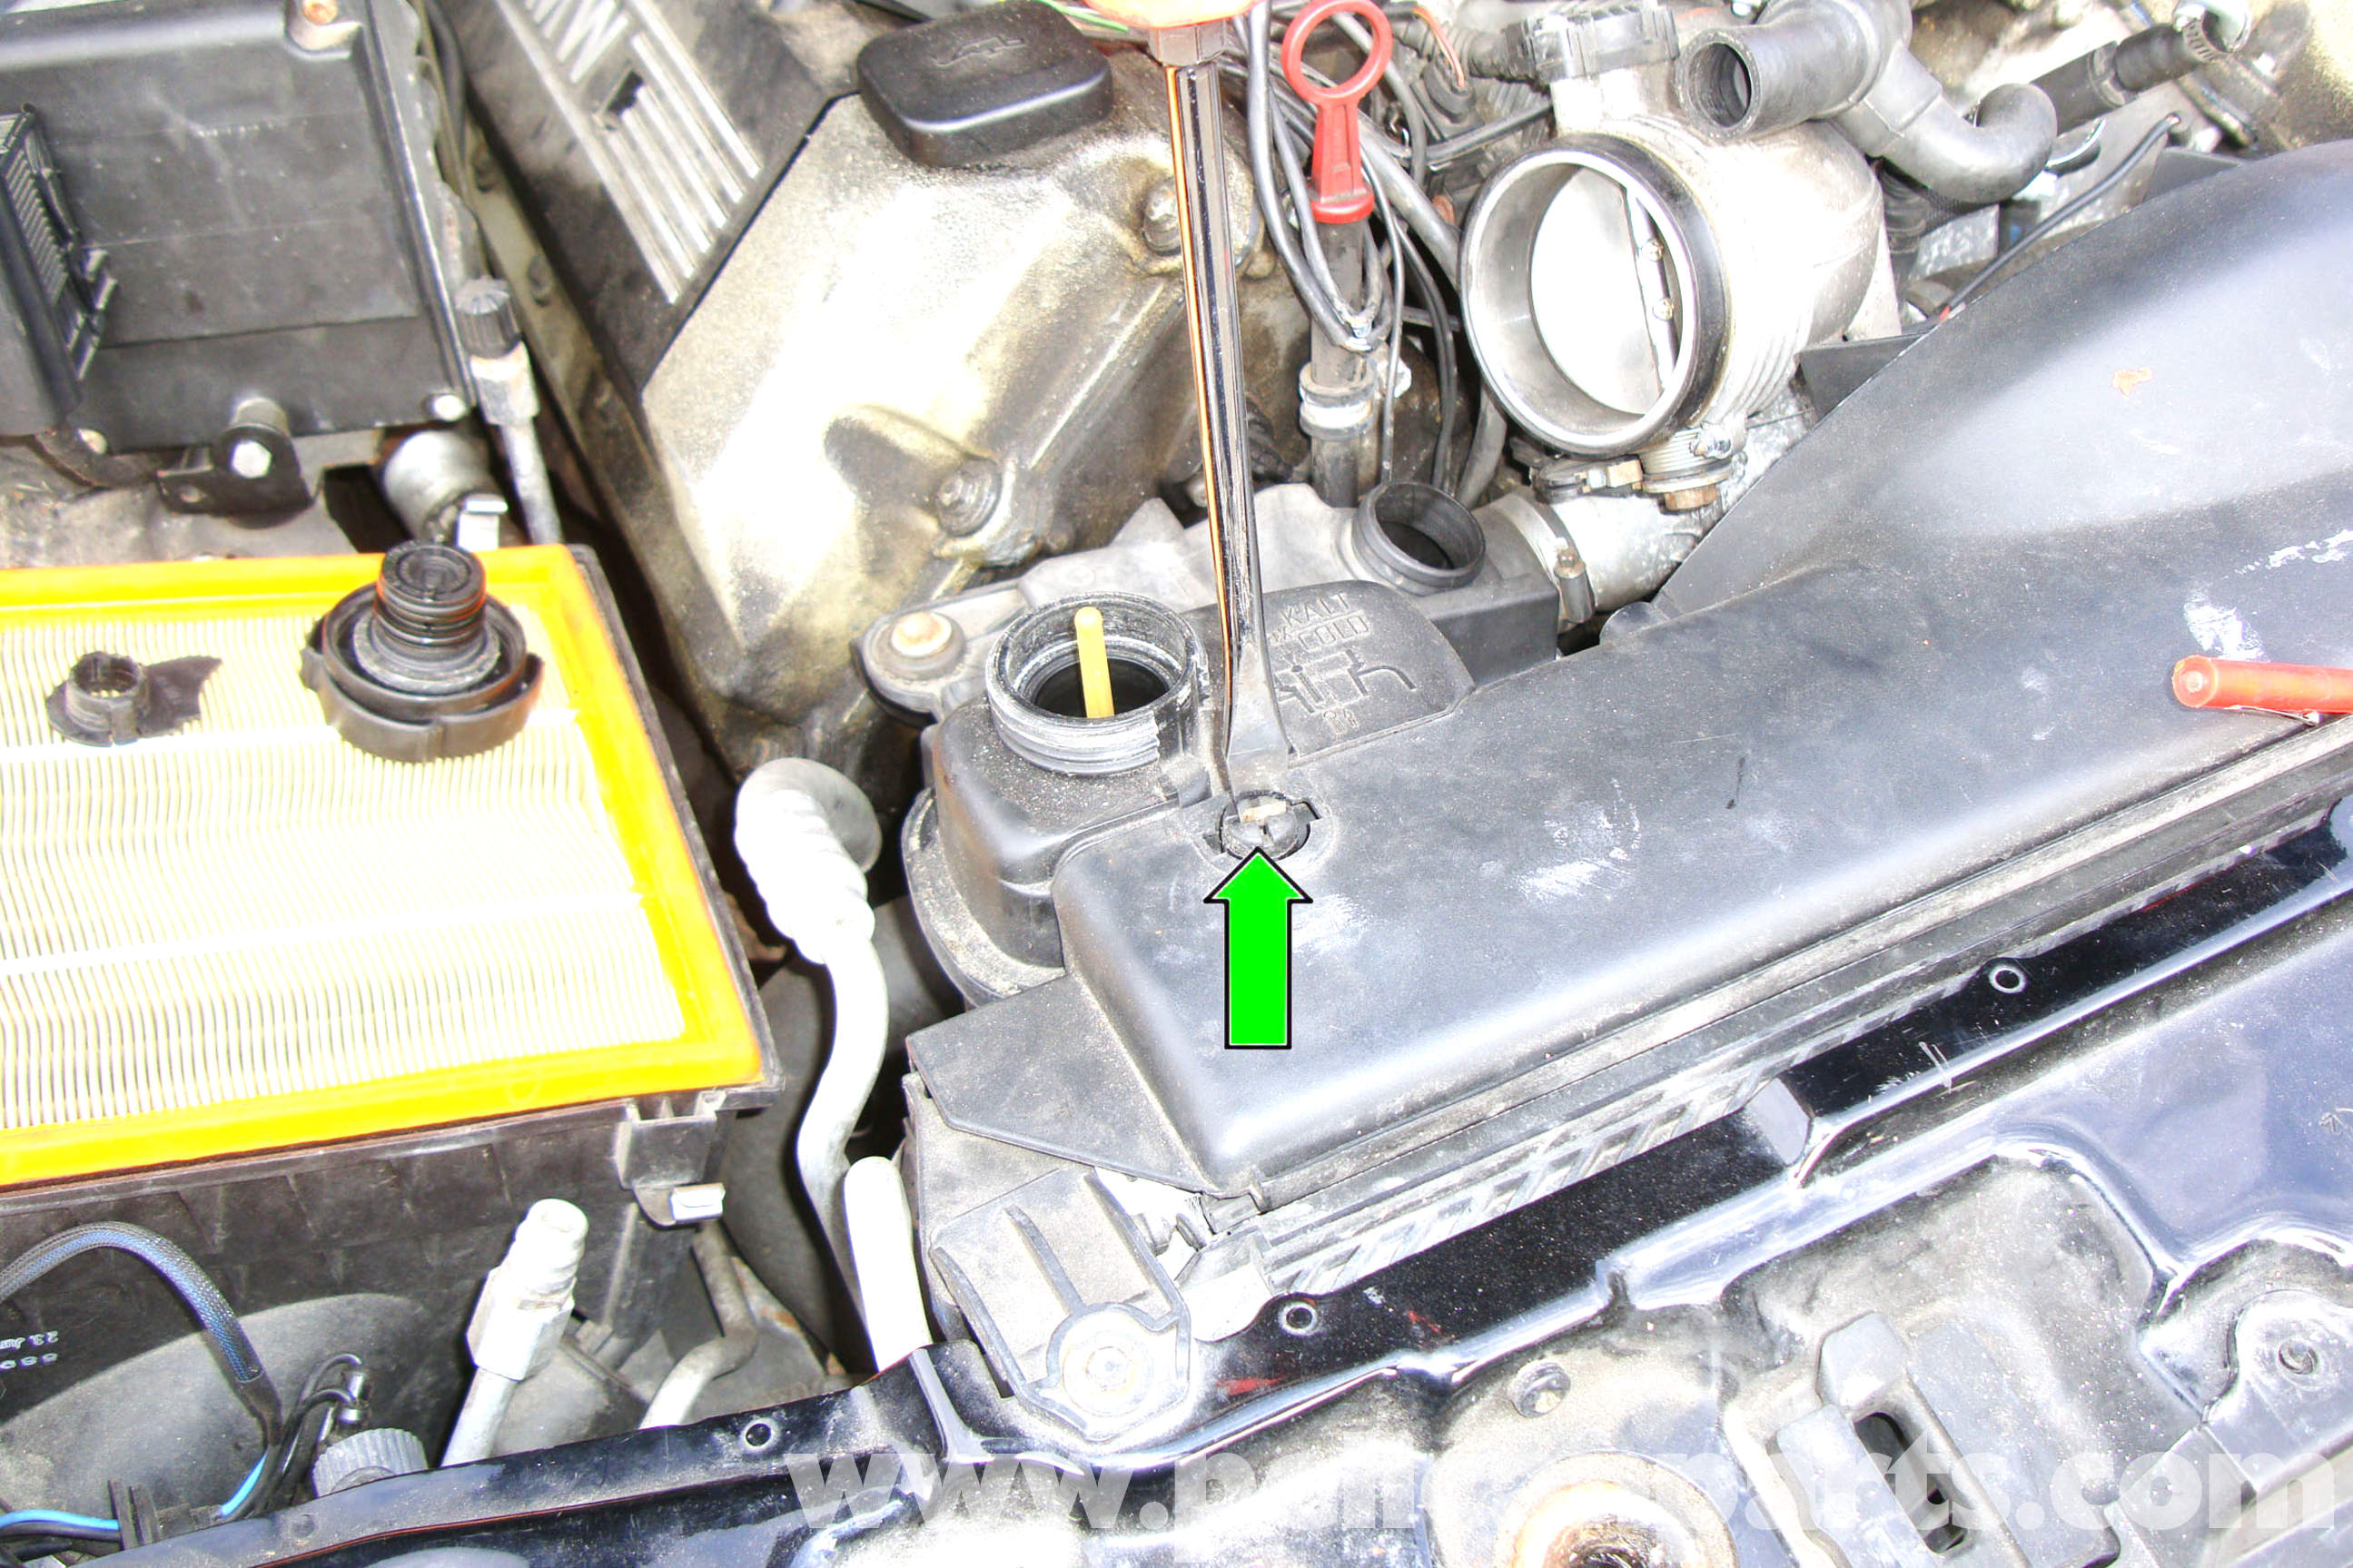 BMW E39 5 Series Cooling System Bleeding and Filling